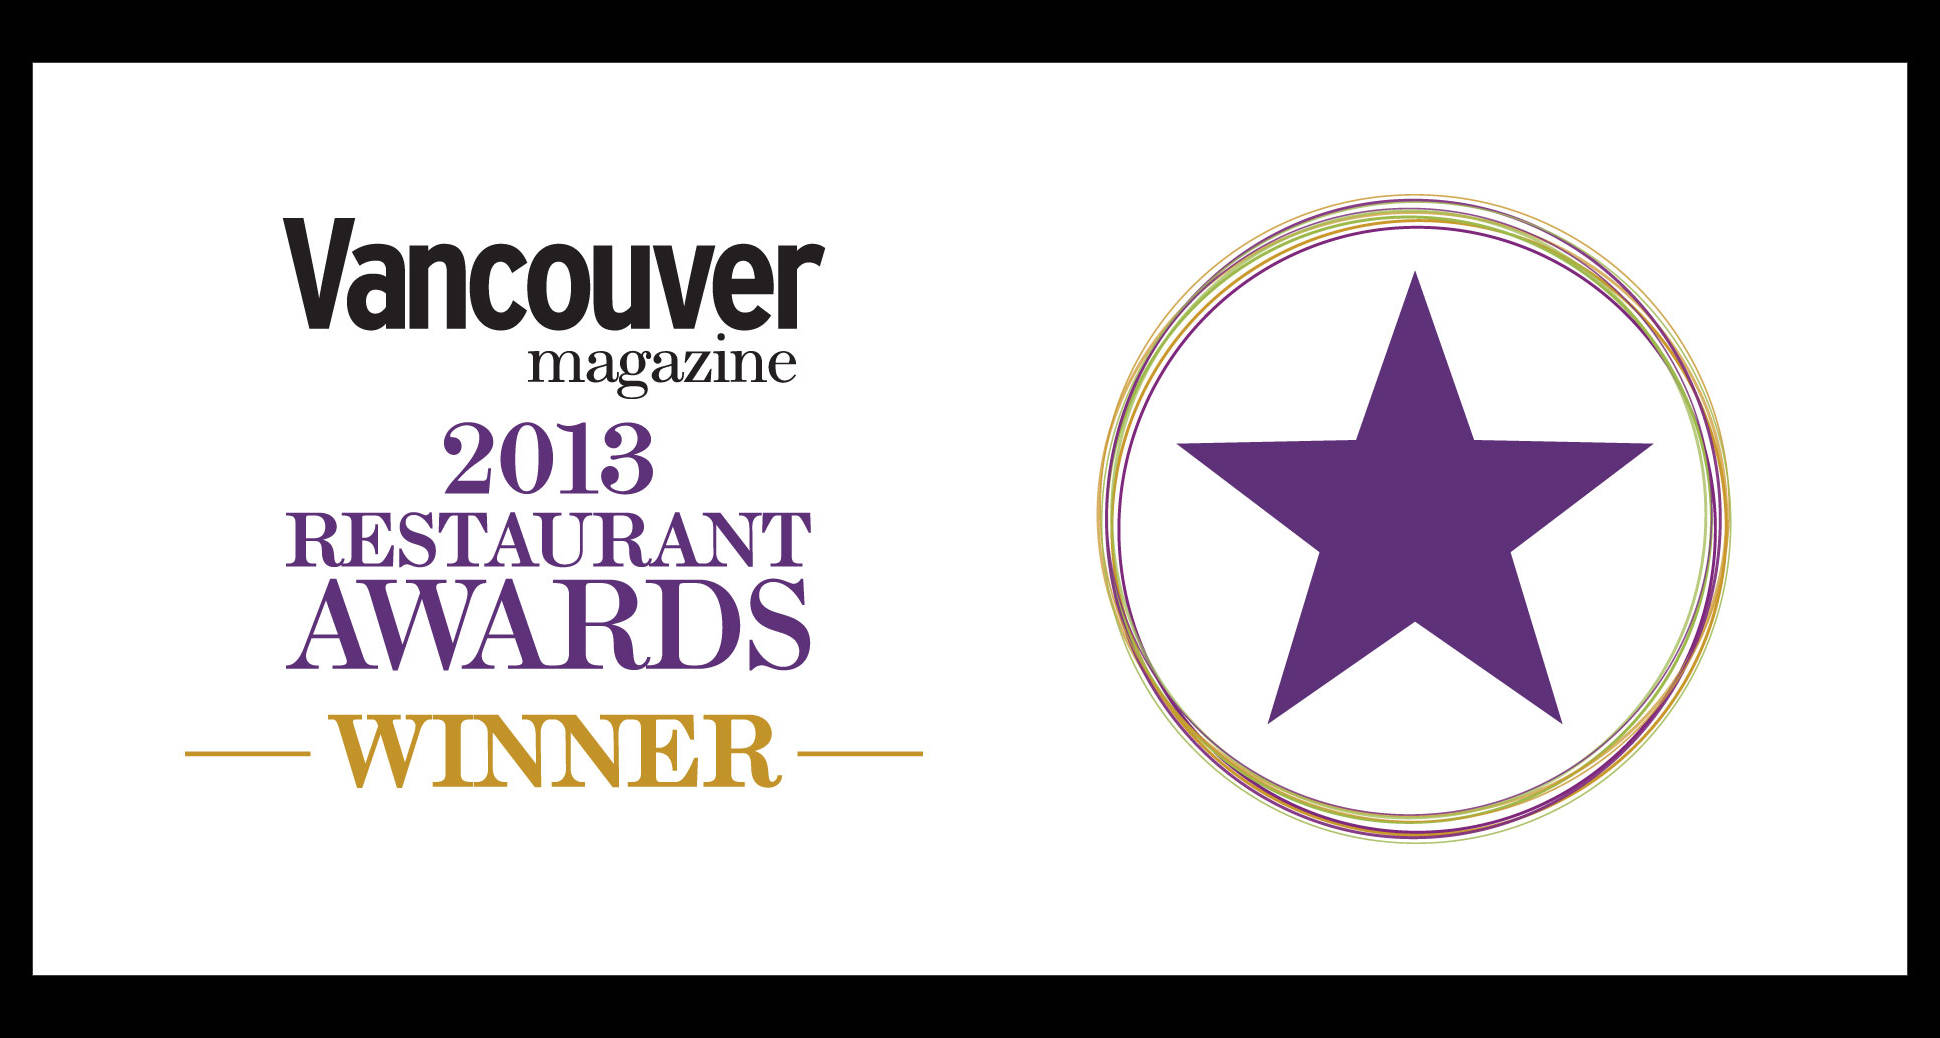 Sura is the best Korean gold winner of Vancouver magazine's 2014 restaurant awards!